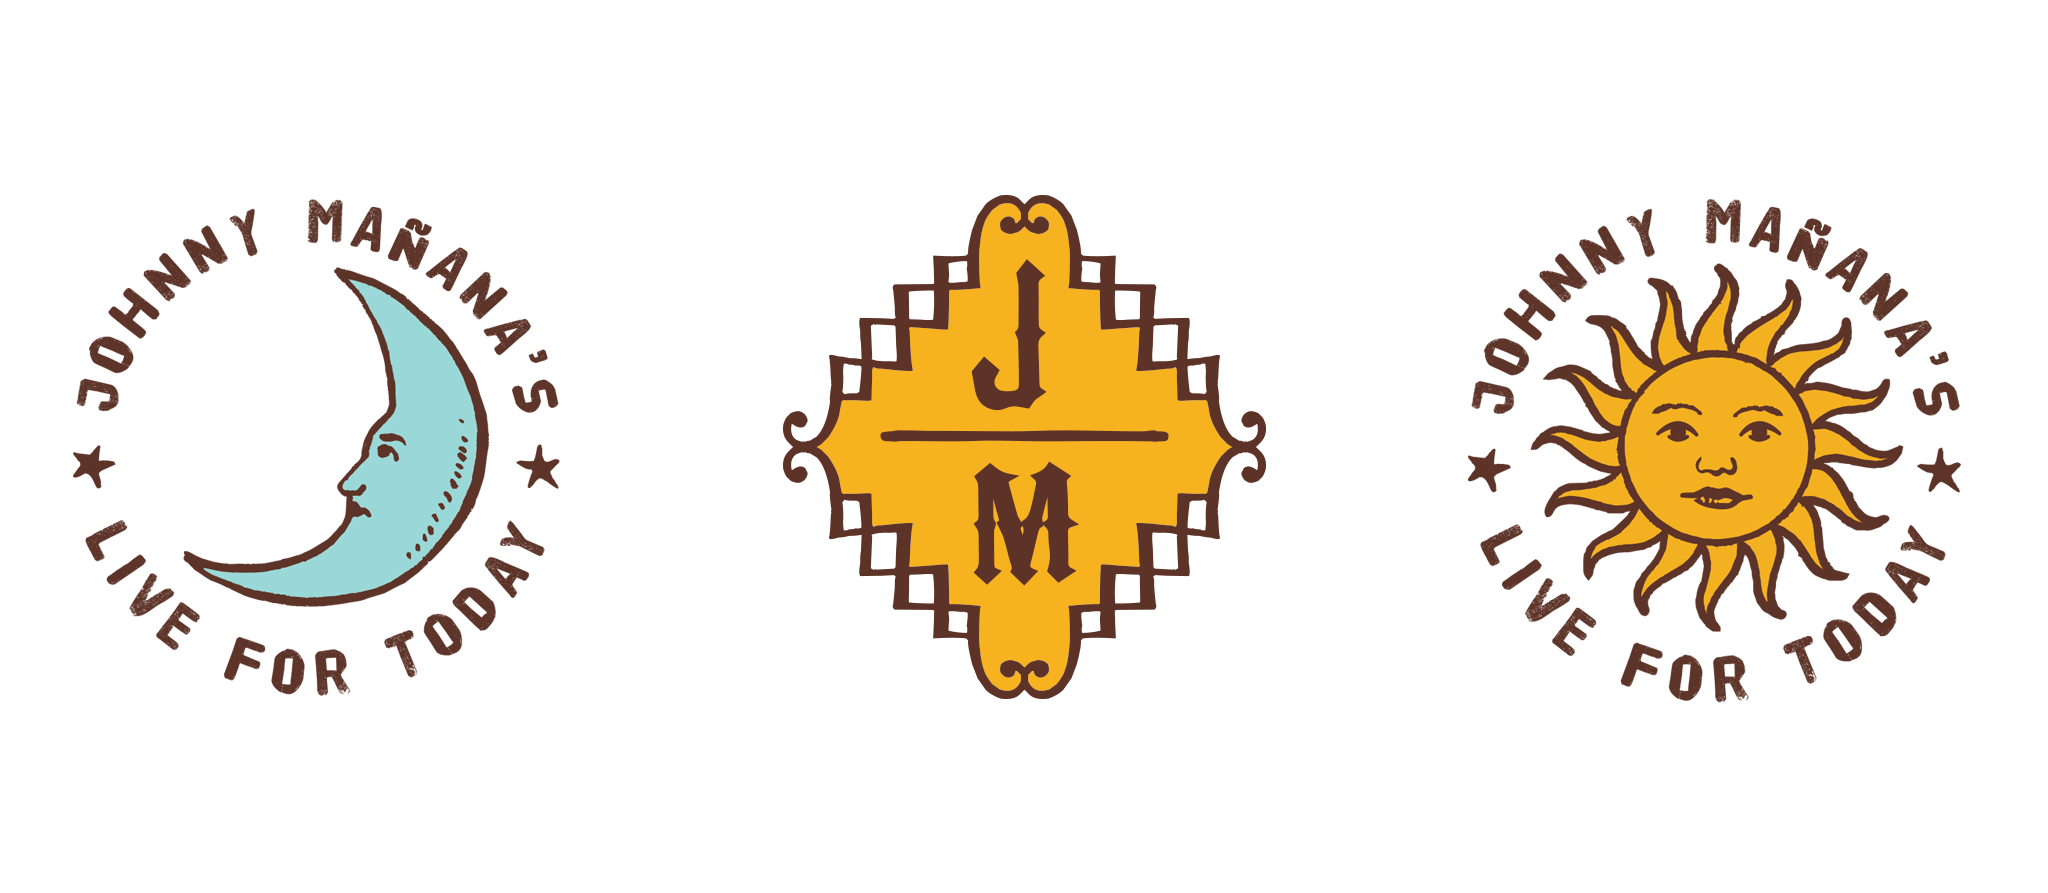 JohnnyMananas_Web_Images_logos.png